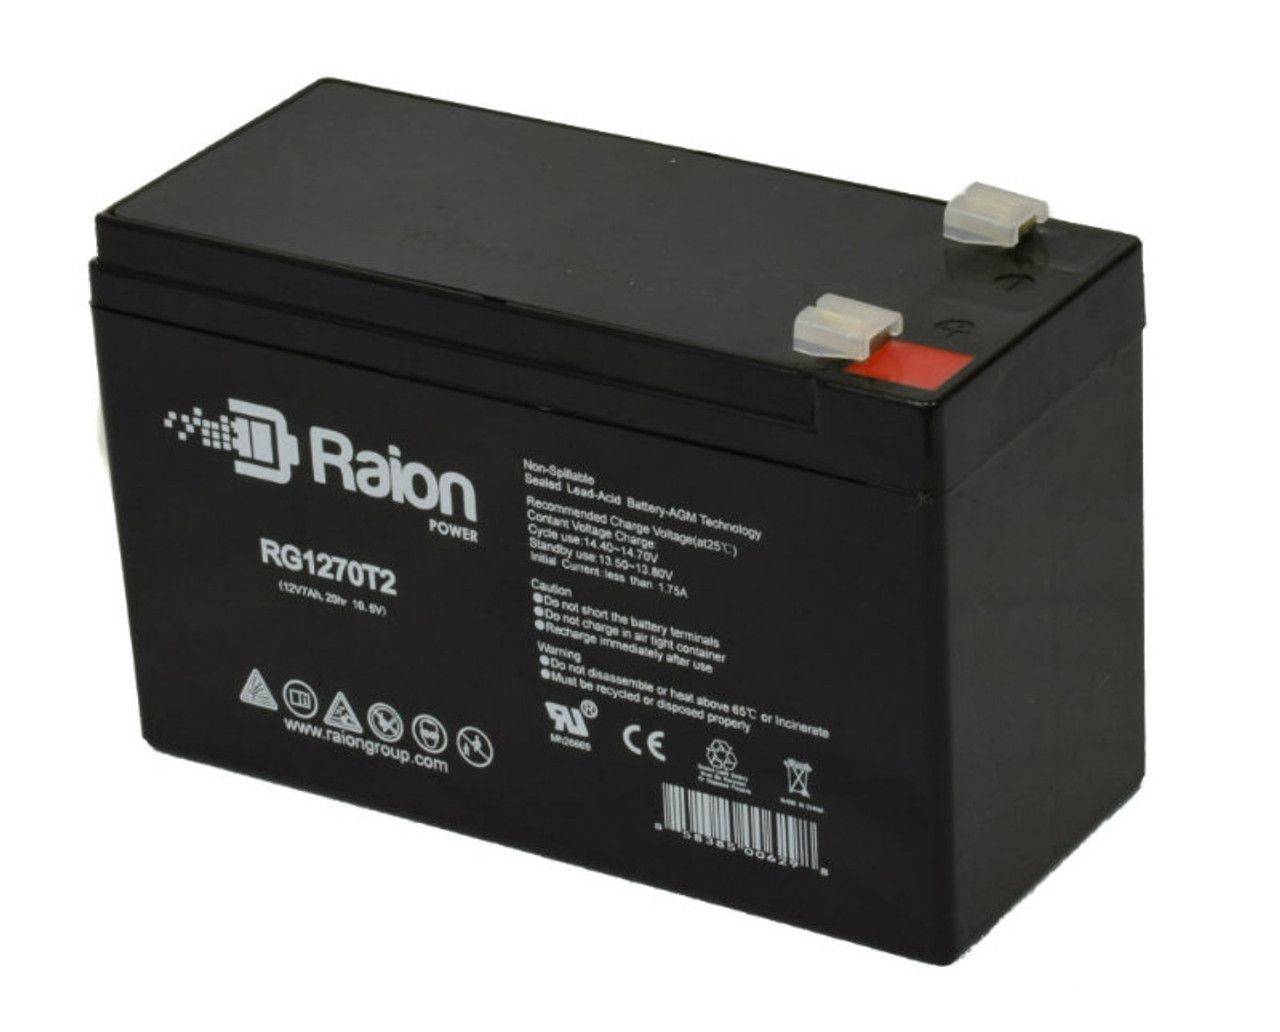 Raion Power RG1270T1 Replacement Battery for Helios FB12-7